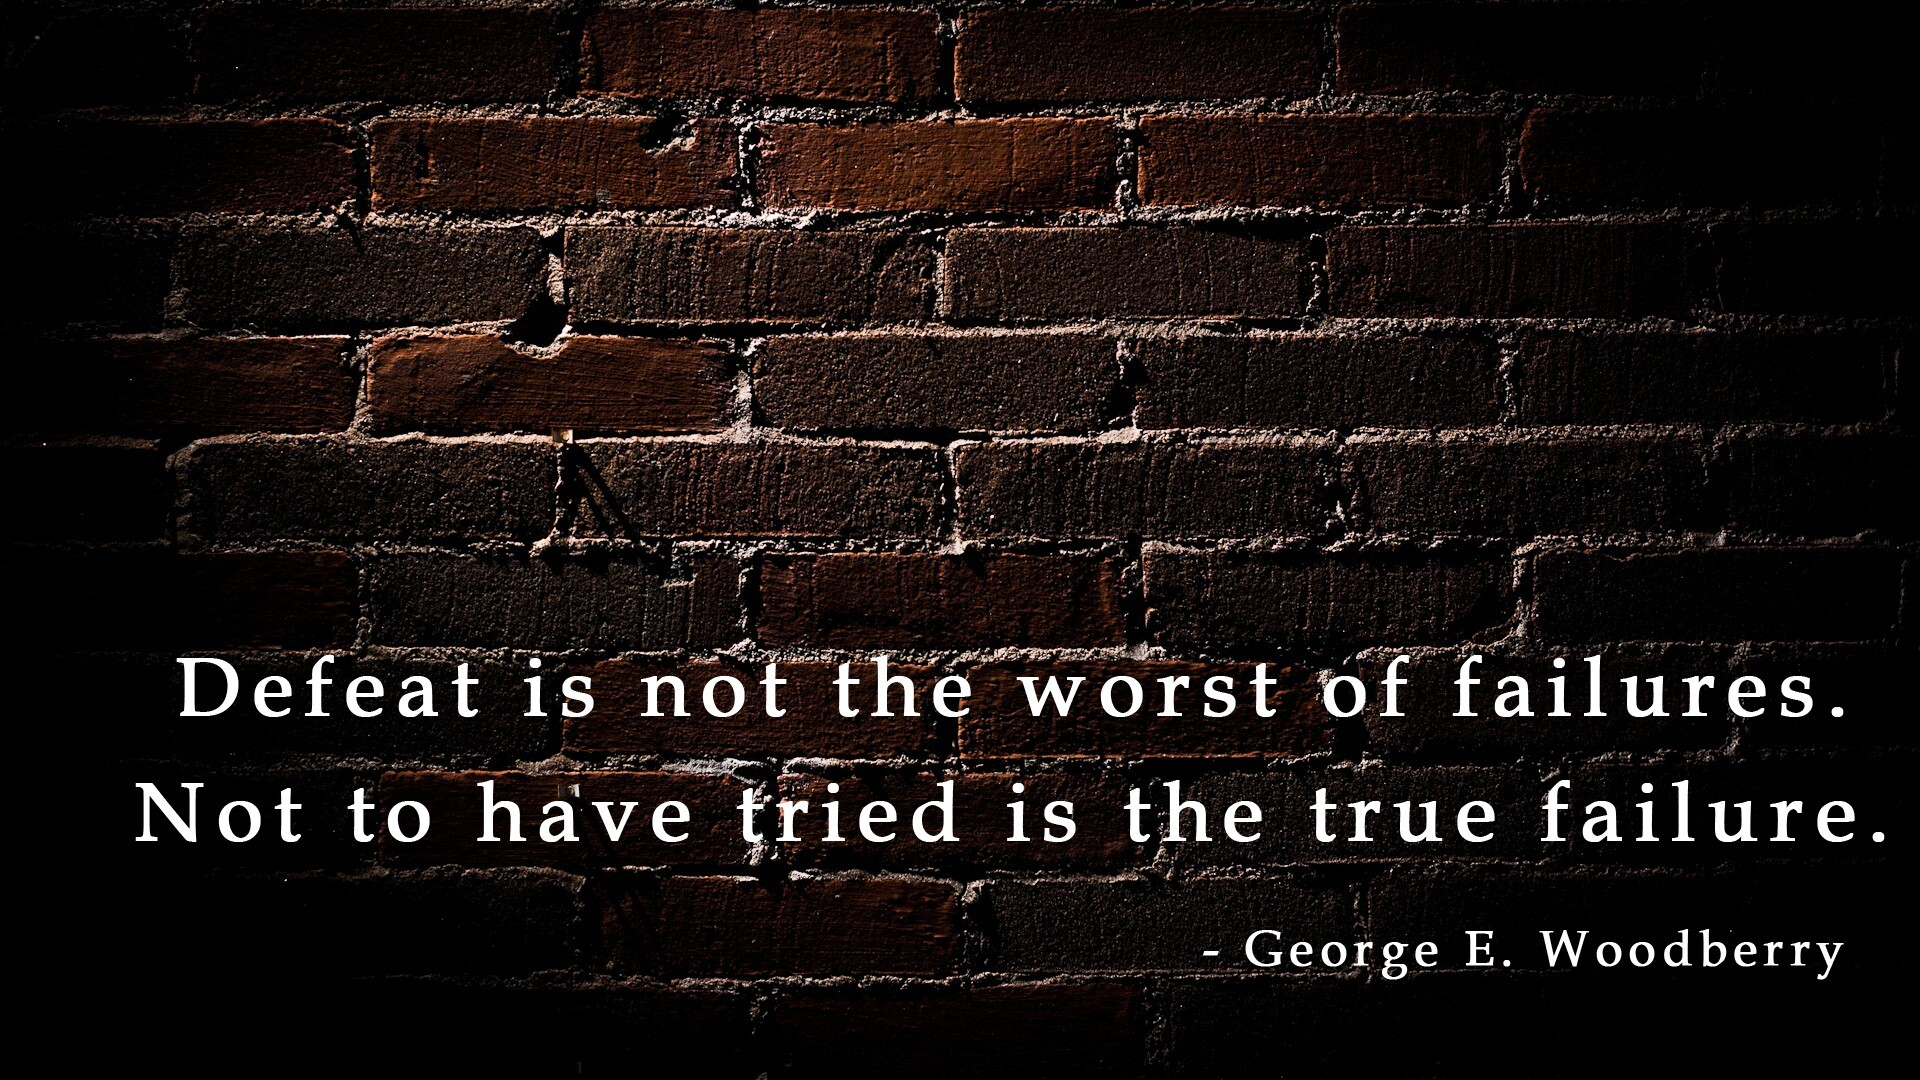 beautiful quote on failures hd wallpapers | hd wallpapers